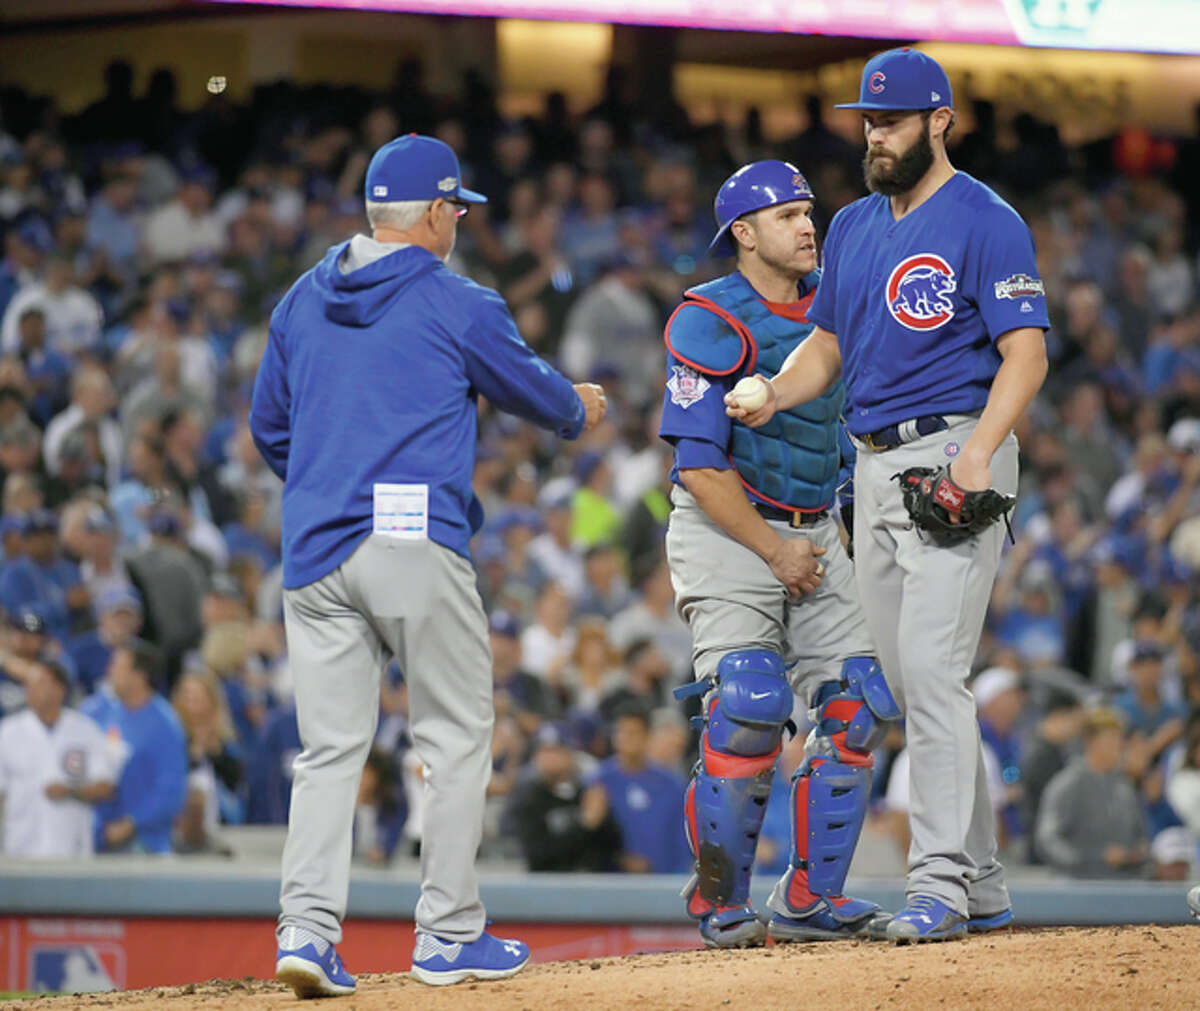 Chicago Cubs manager Joe Maddon takes starter Jake Arrieta out of the game during the sixth inning of Game 3 of the National League Championship Series against the Dodgers Tuesday night in Los Angeles.